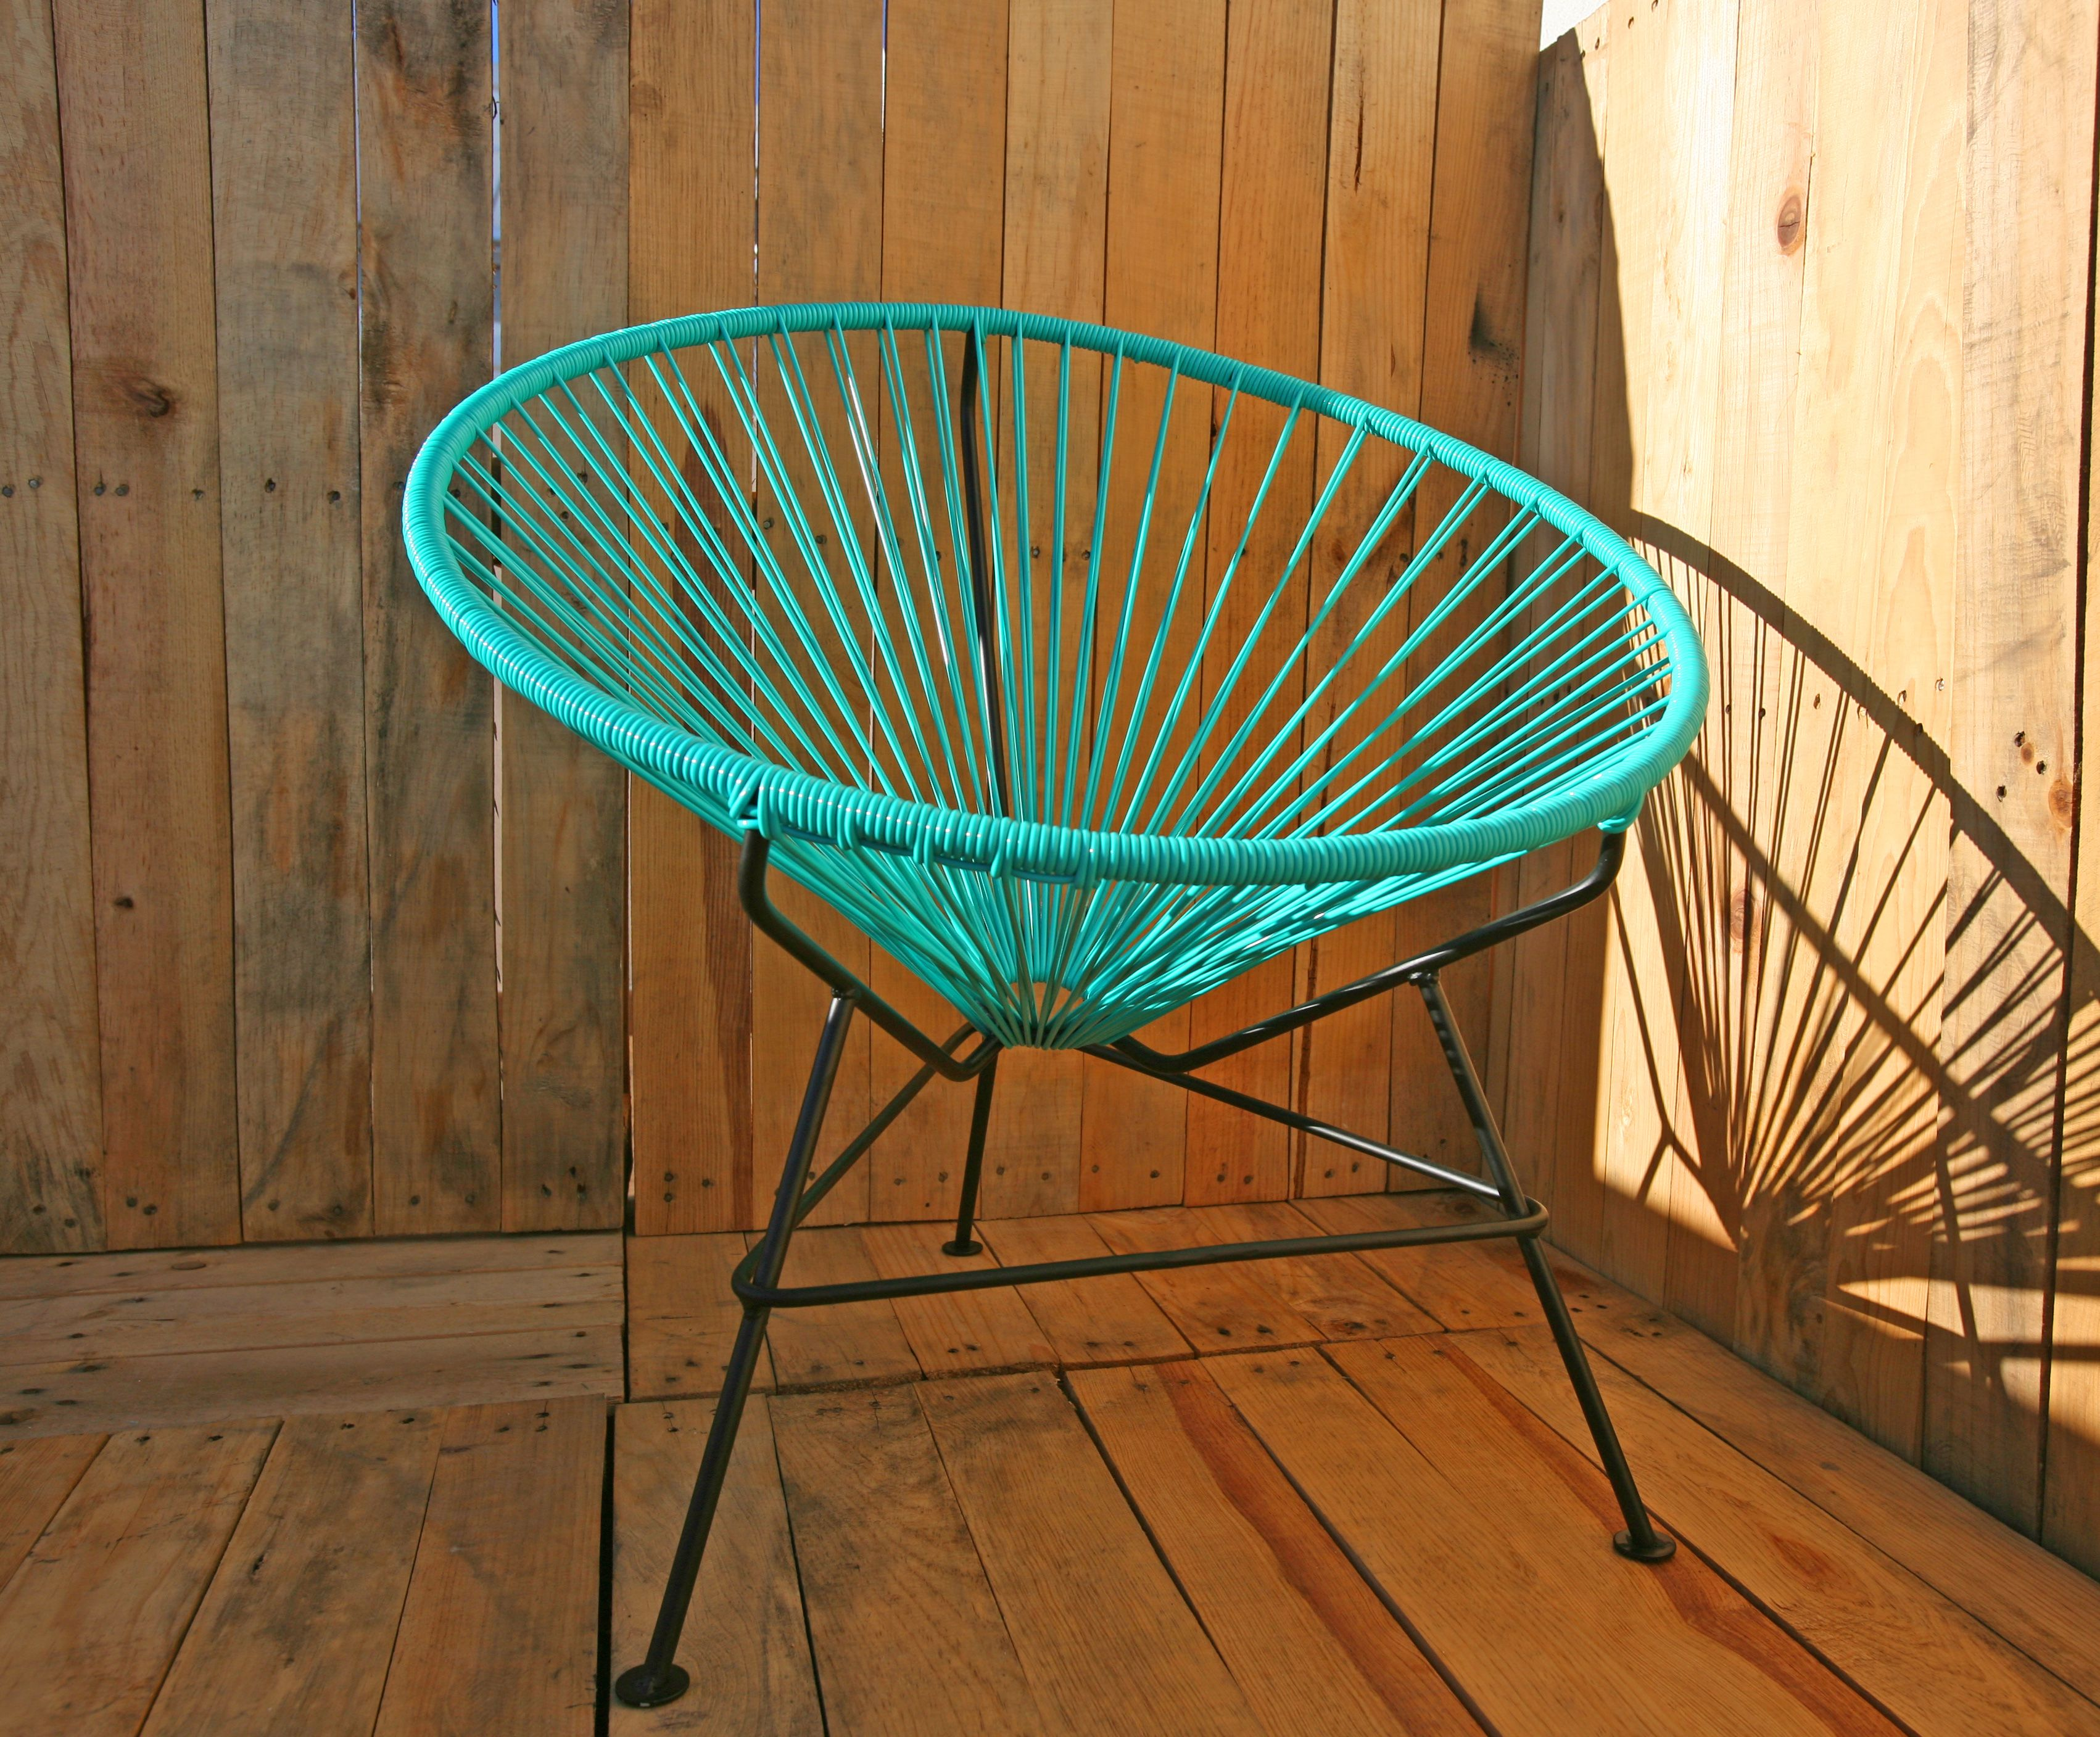 Acapulco chair outdoor - The Elegant Sister Of The Infamous Acapulco Chair La Silla Condesa Named After The